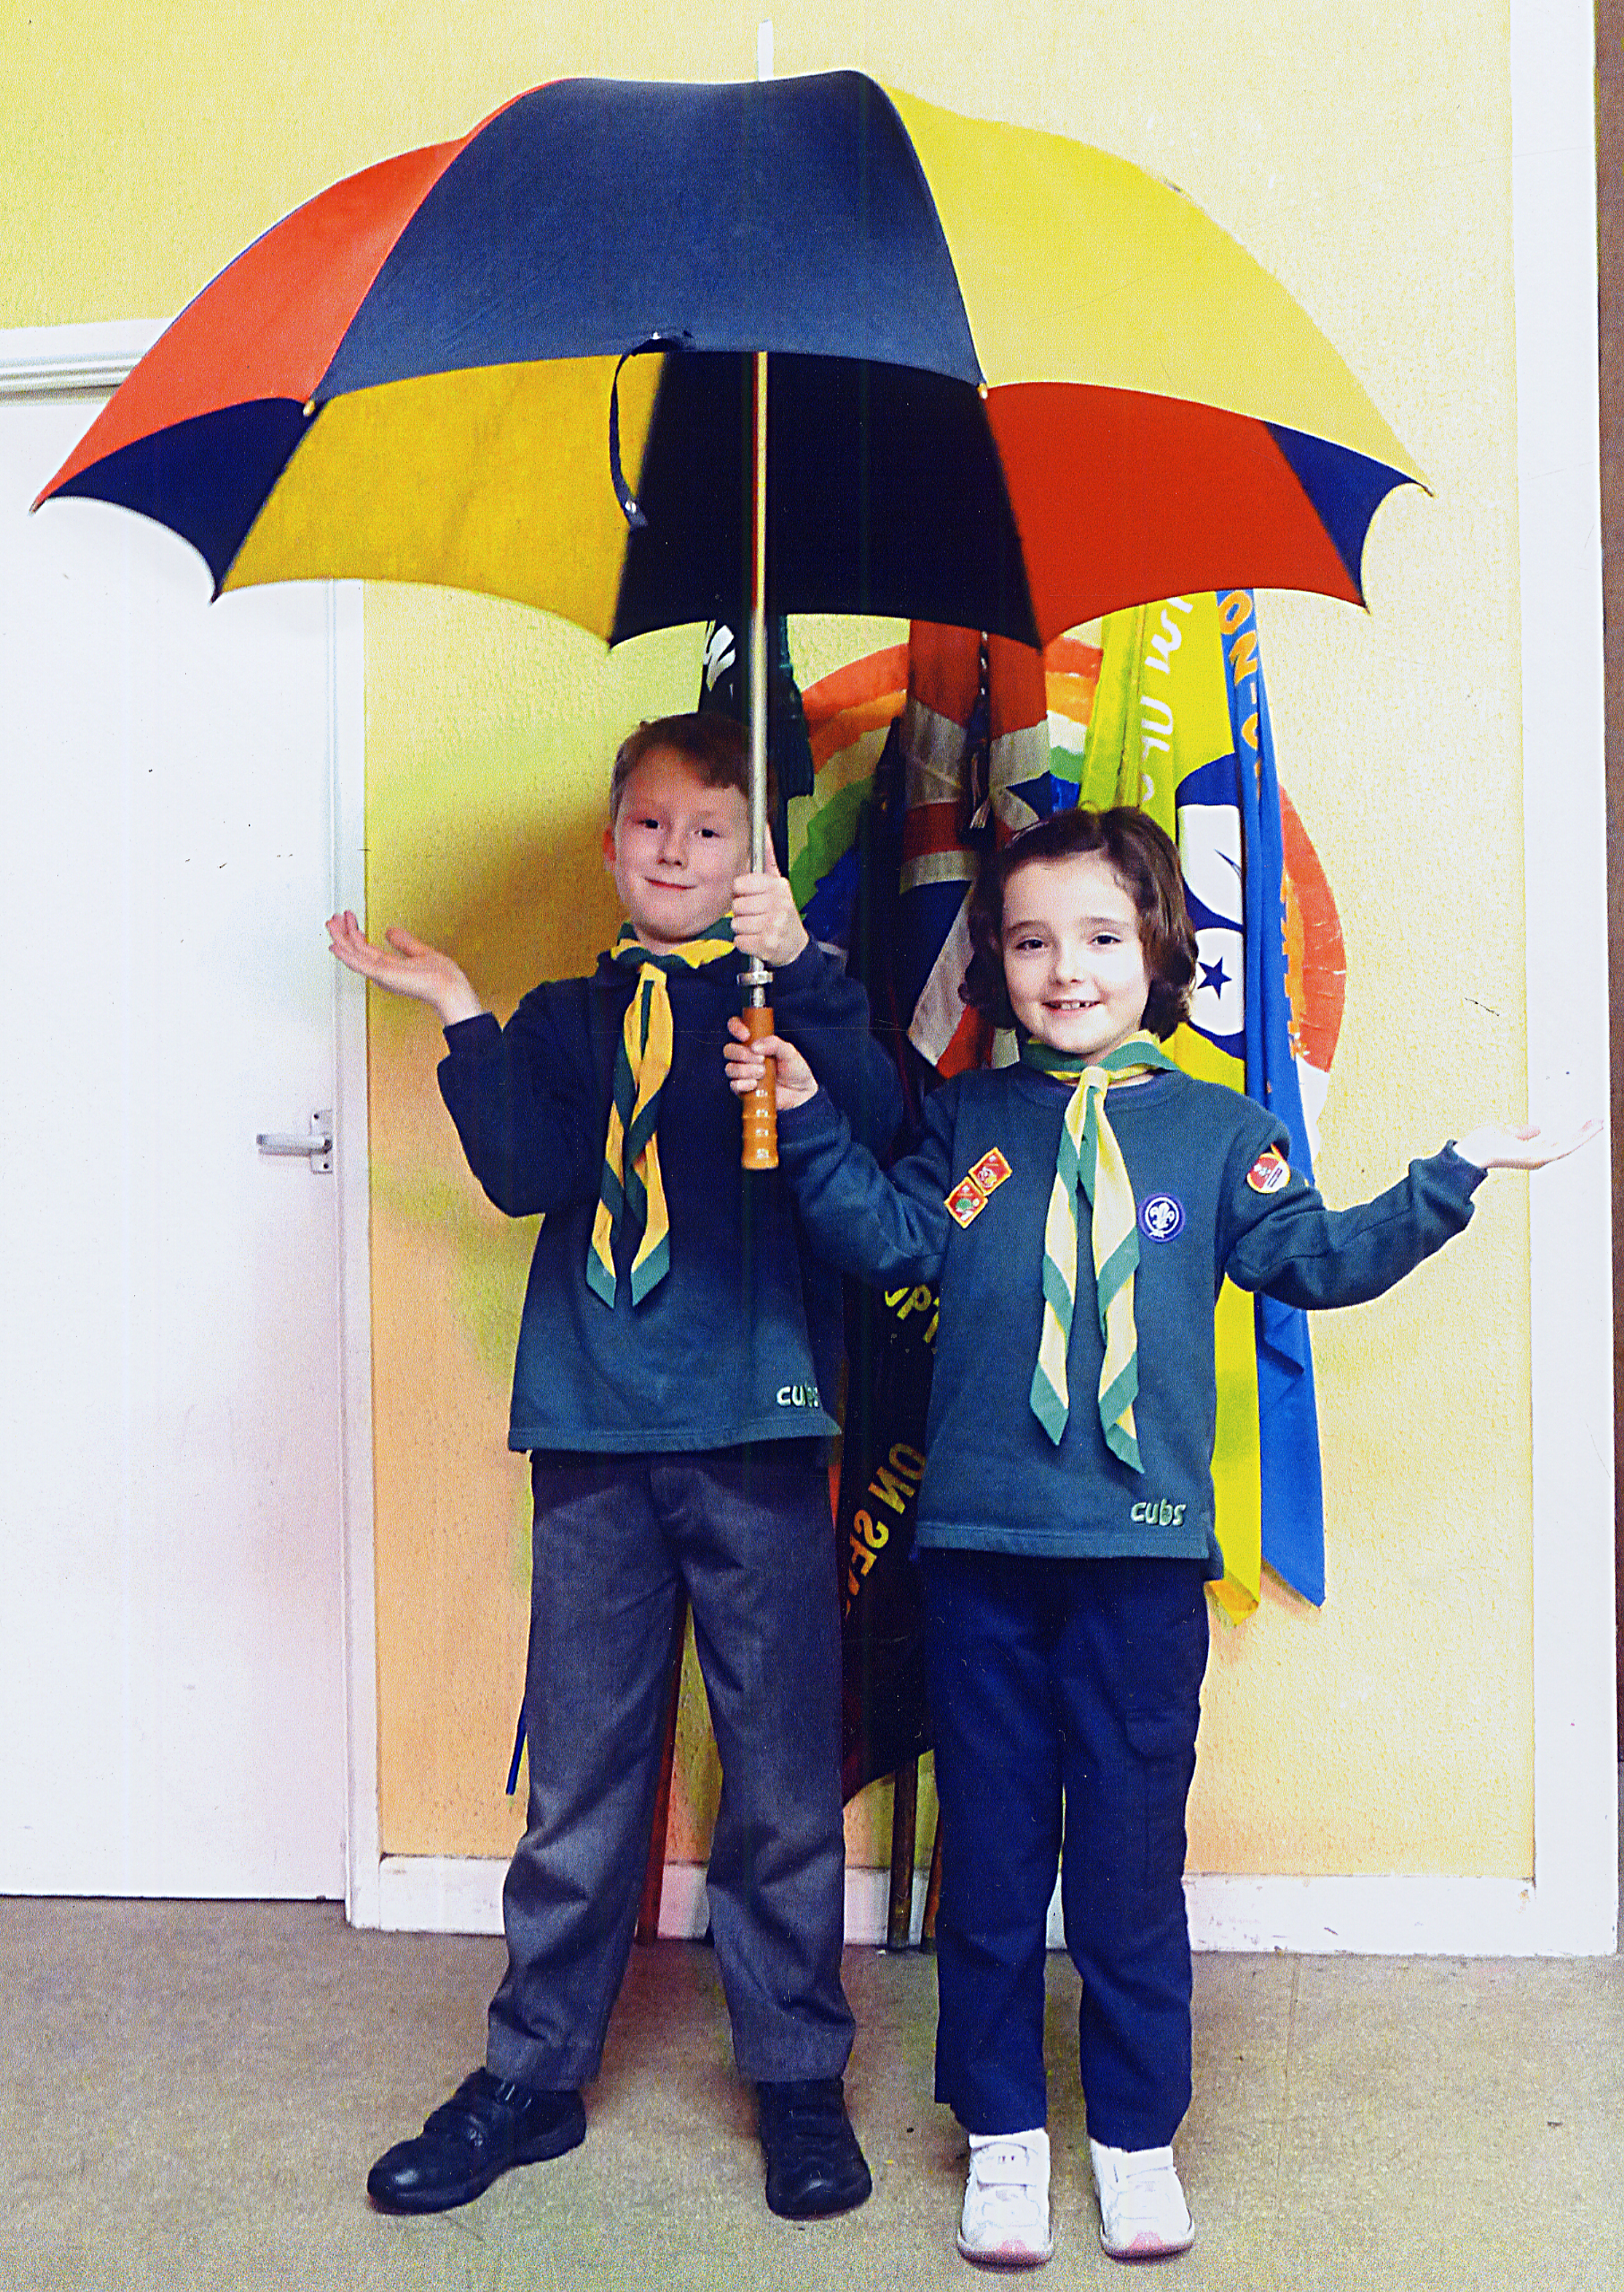 Frankie Franks (left) and Lucy Tyrell of the Cub pack will be warm and dry again, thanks to the new roof.